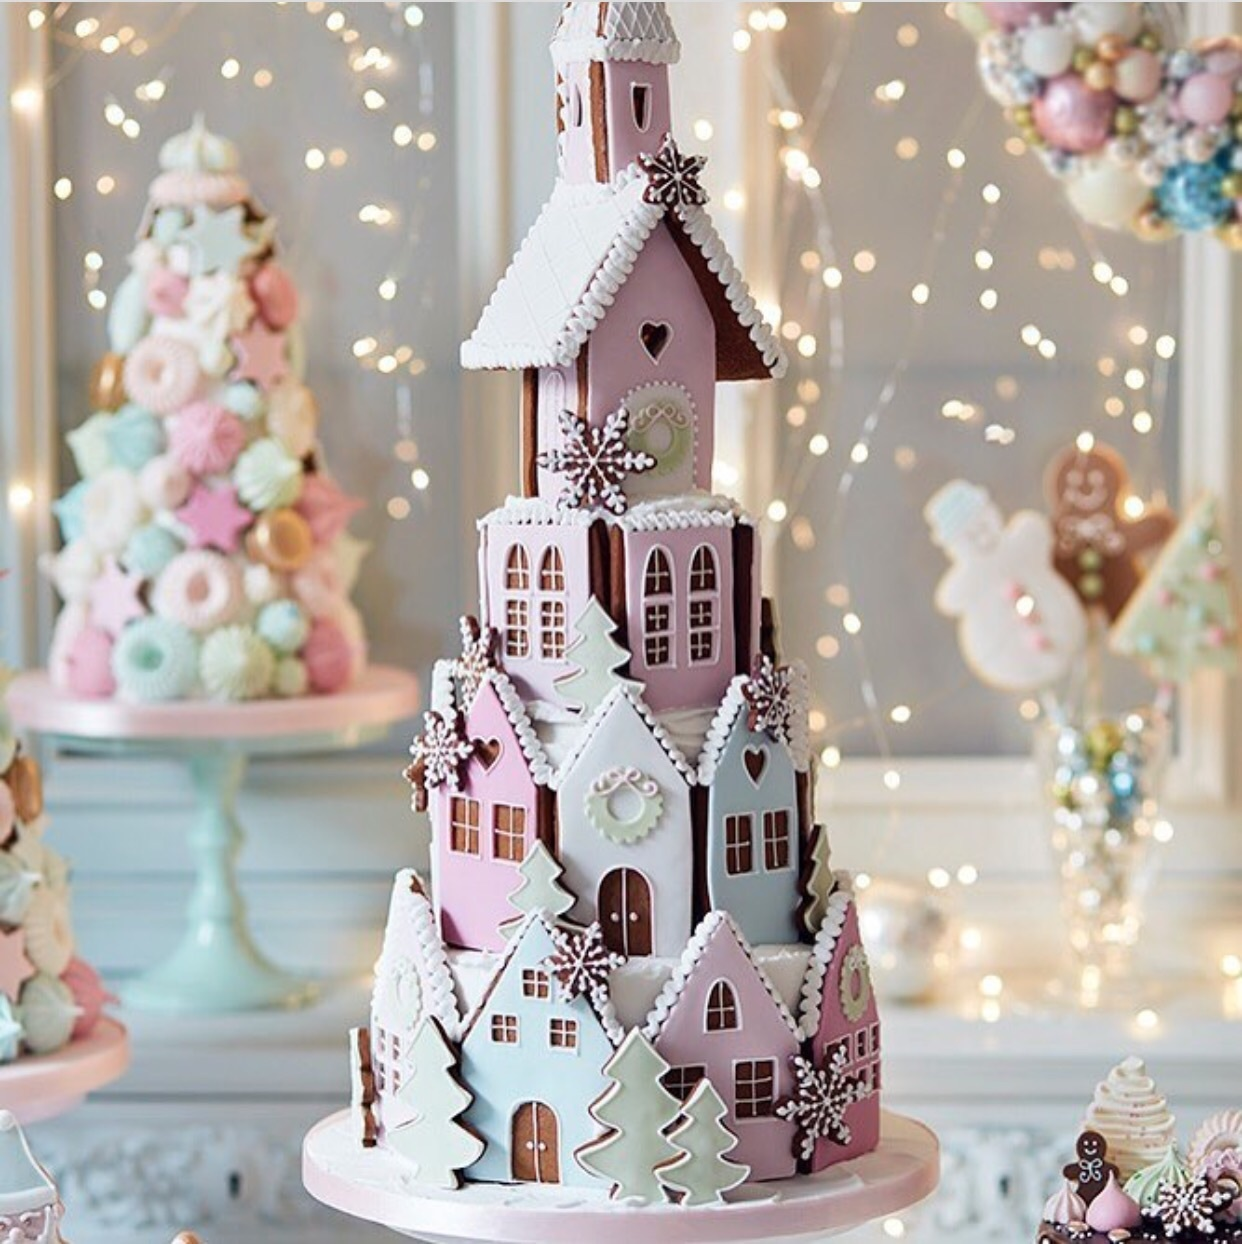 10 Awesome Gingerbread House Ideas